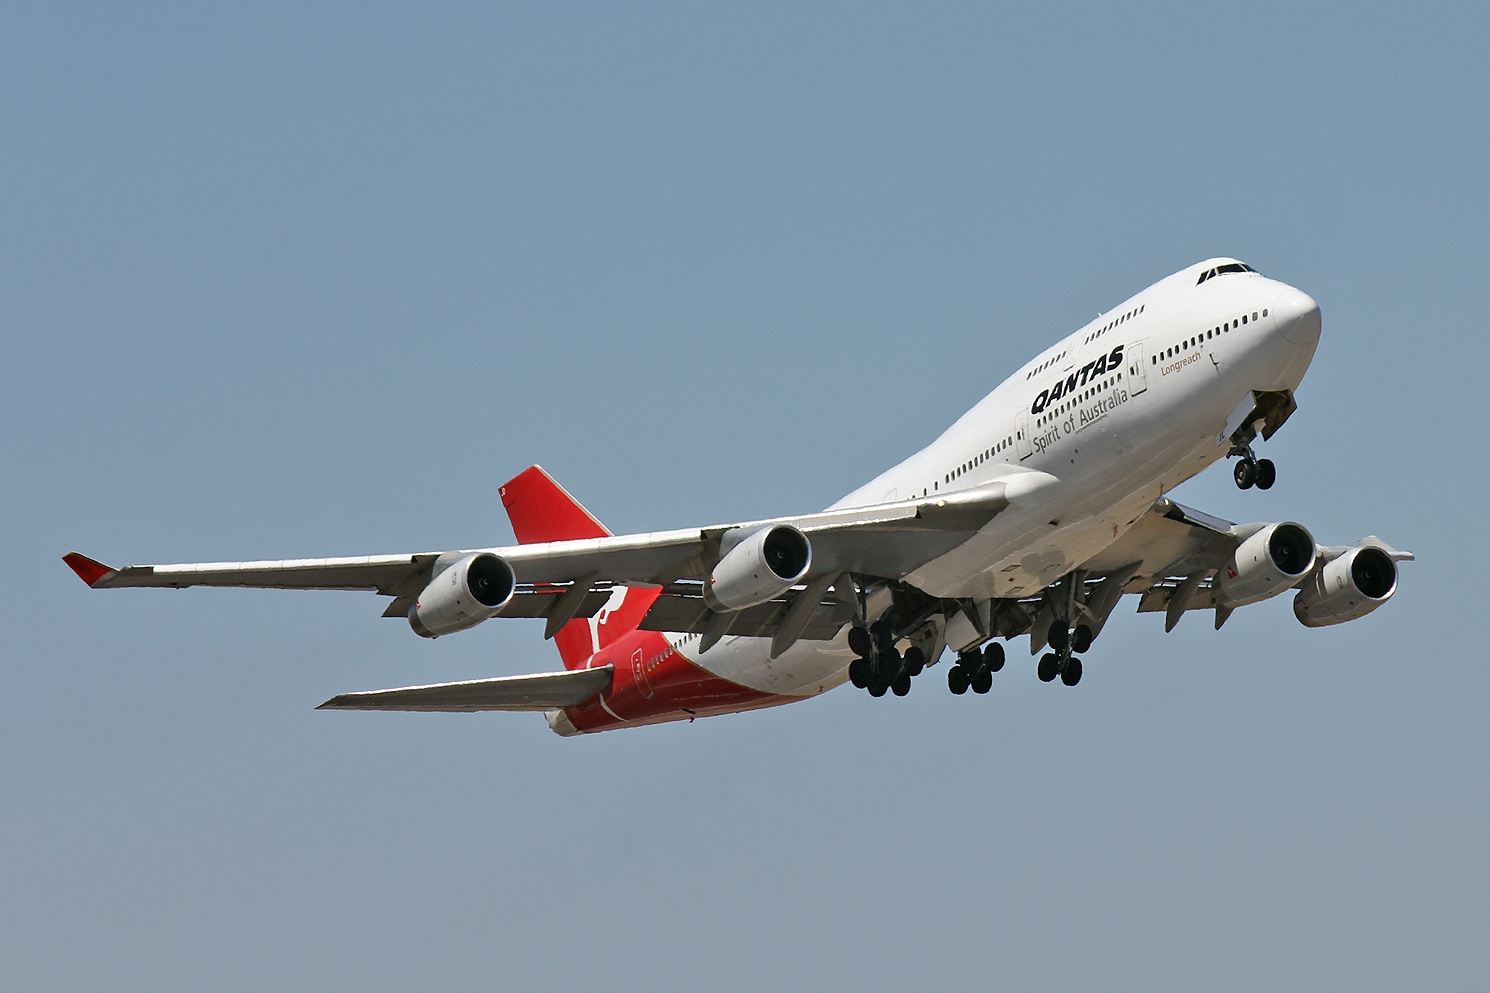 Qantas airways operated for the last time today or at least the